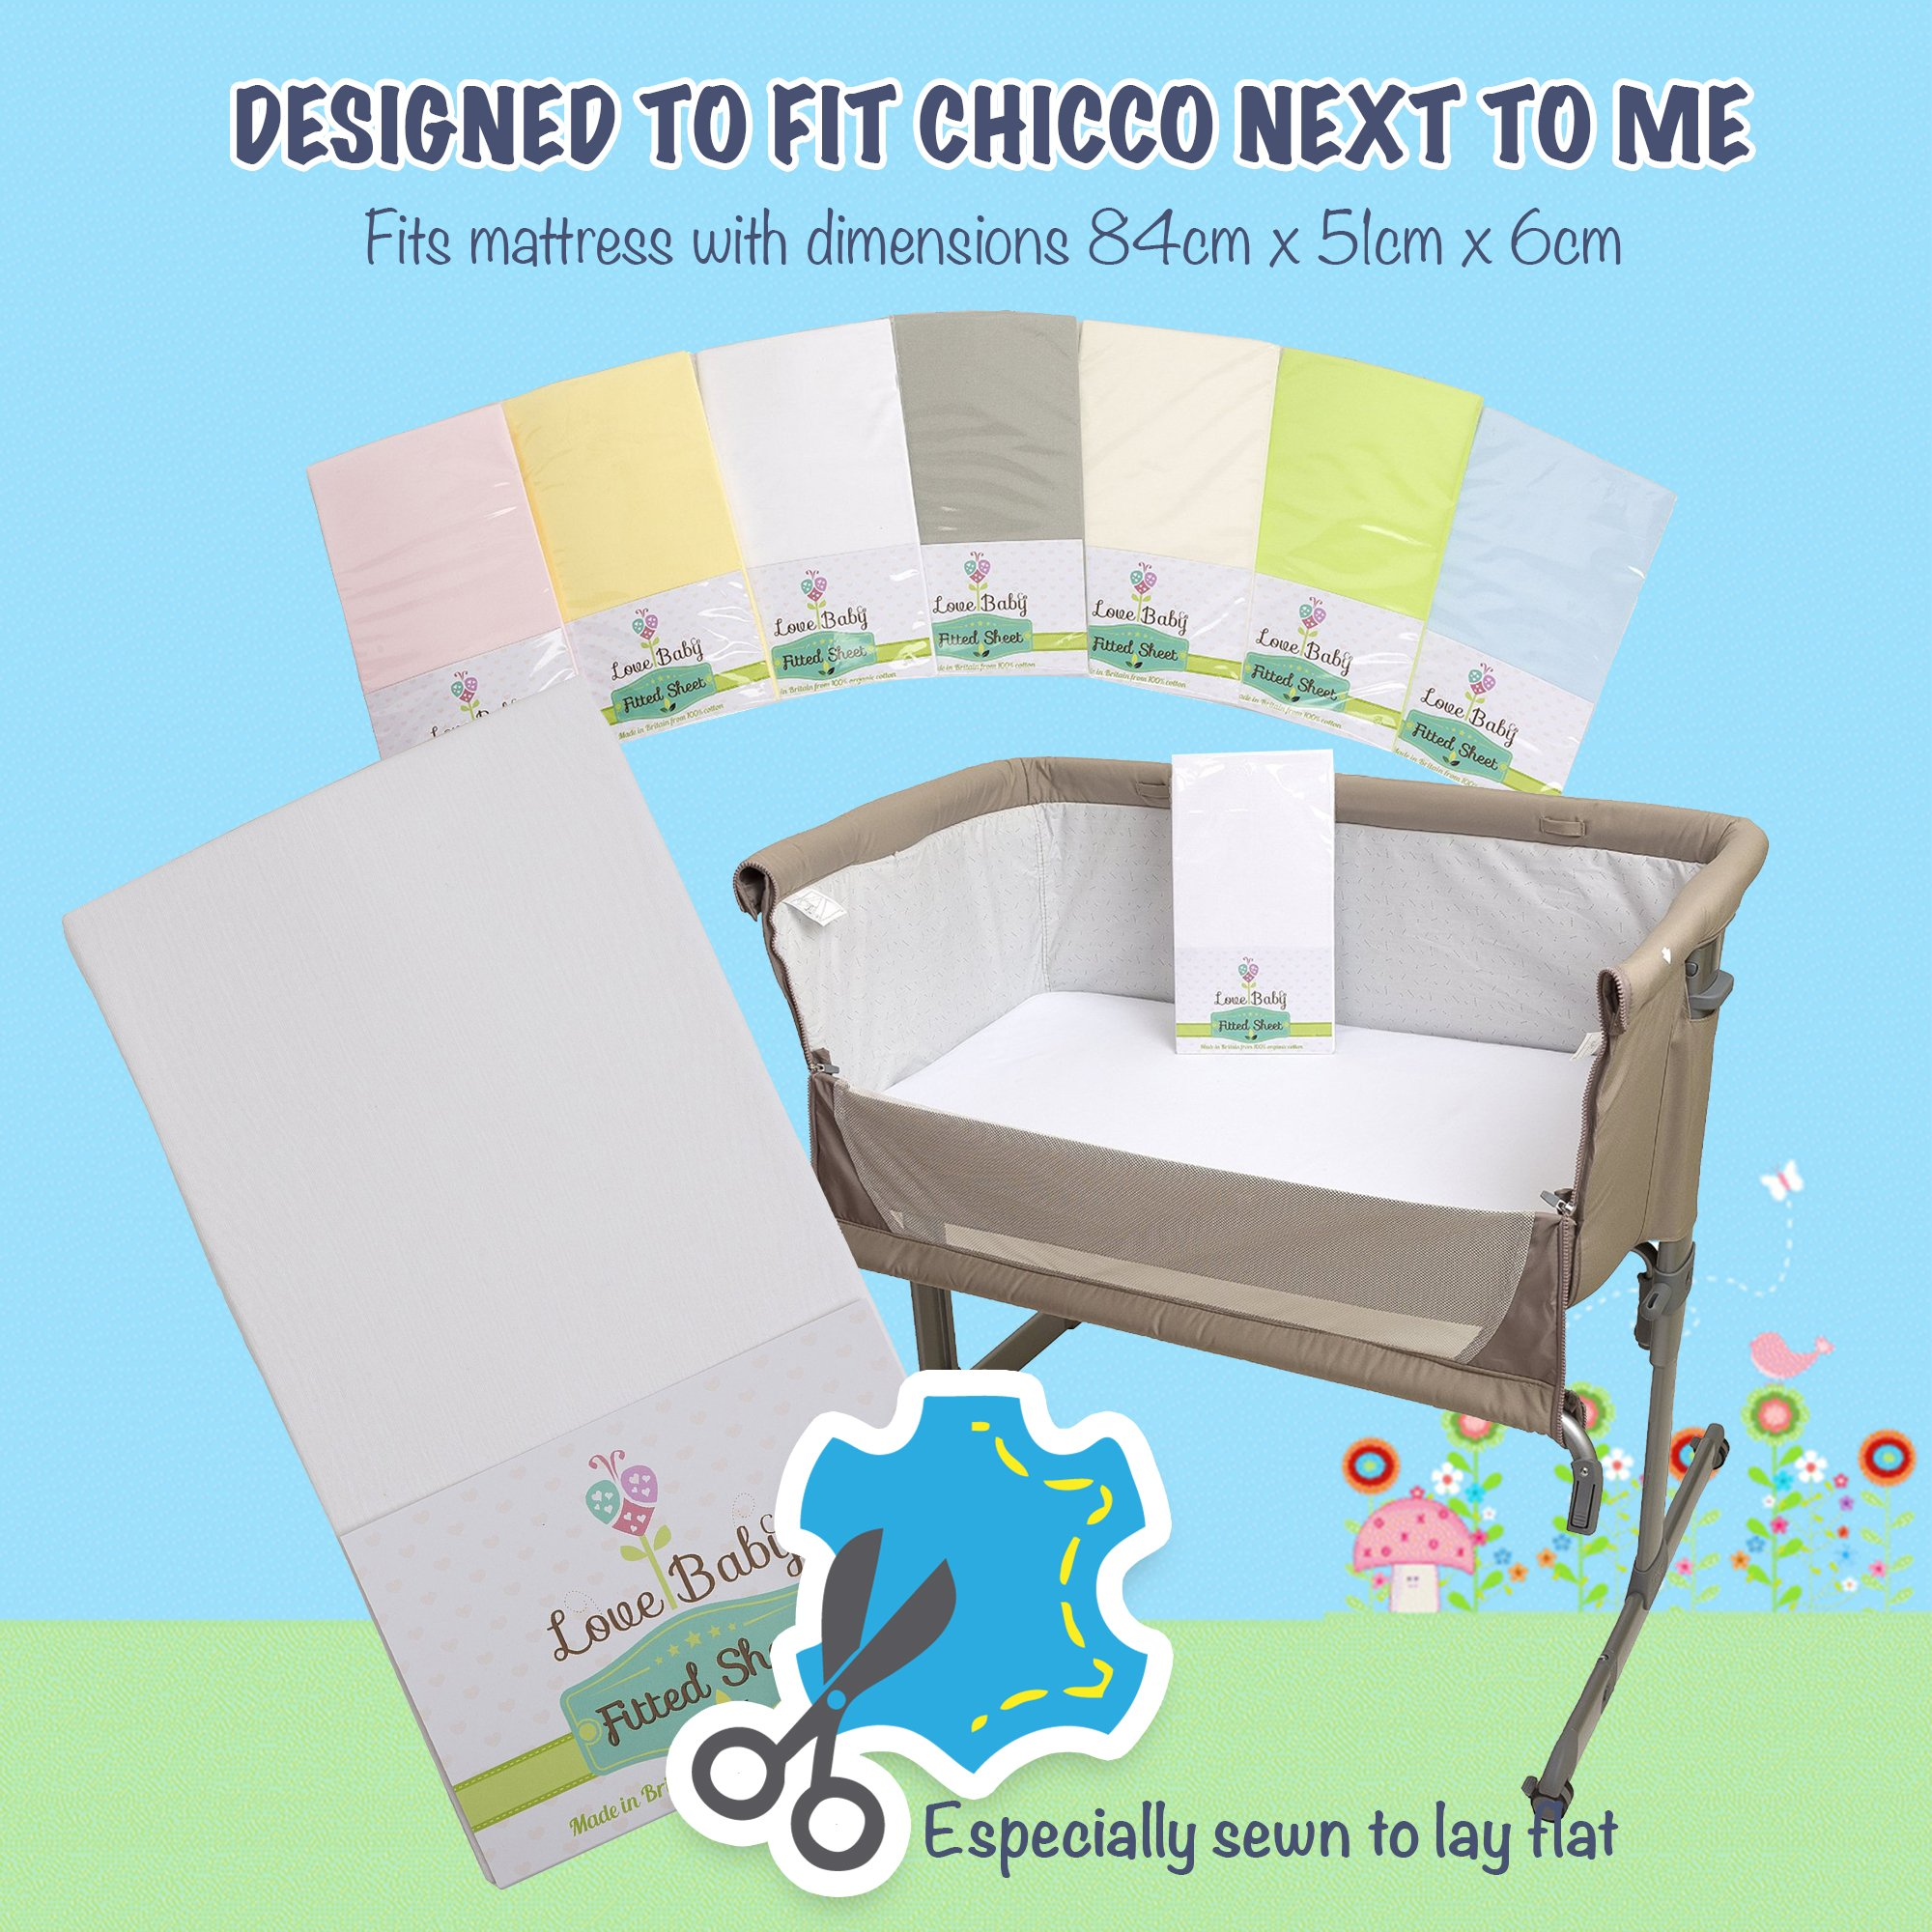 Beanbone Fitted Crib Sheet Made To Fit The Bedside Crib